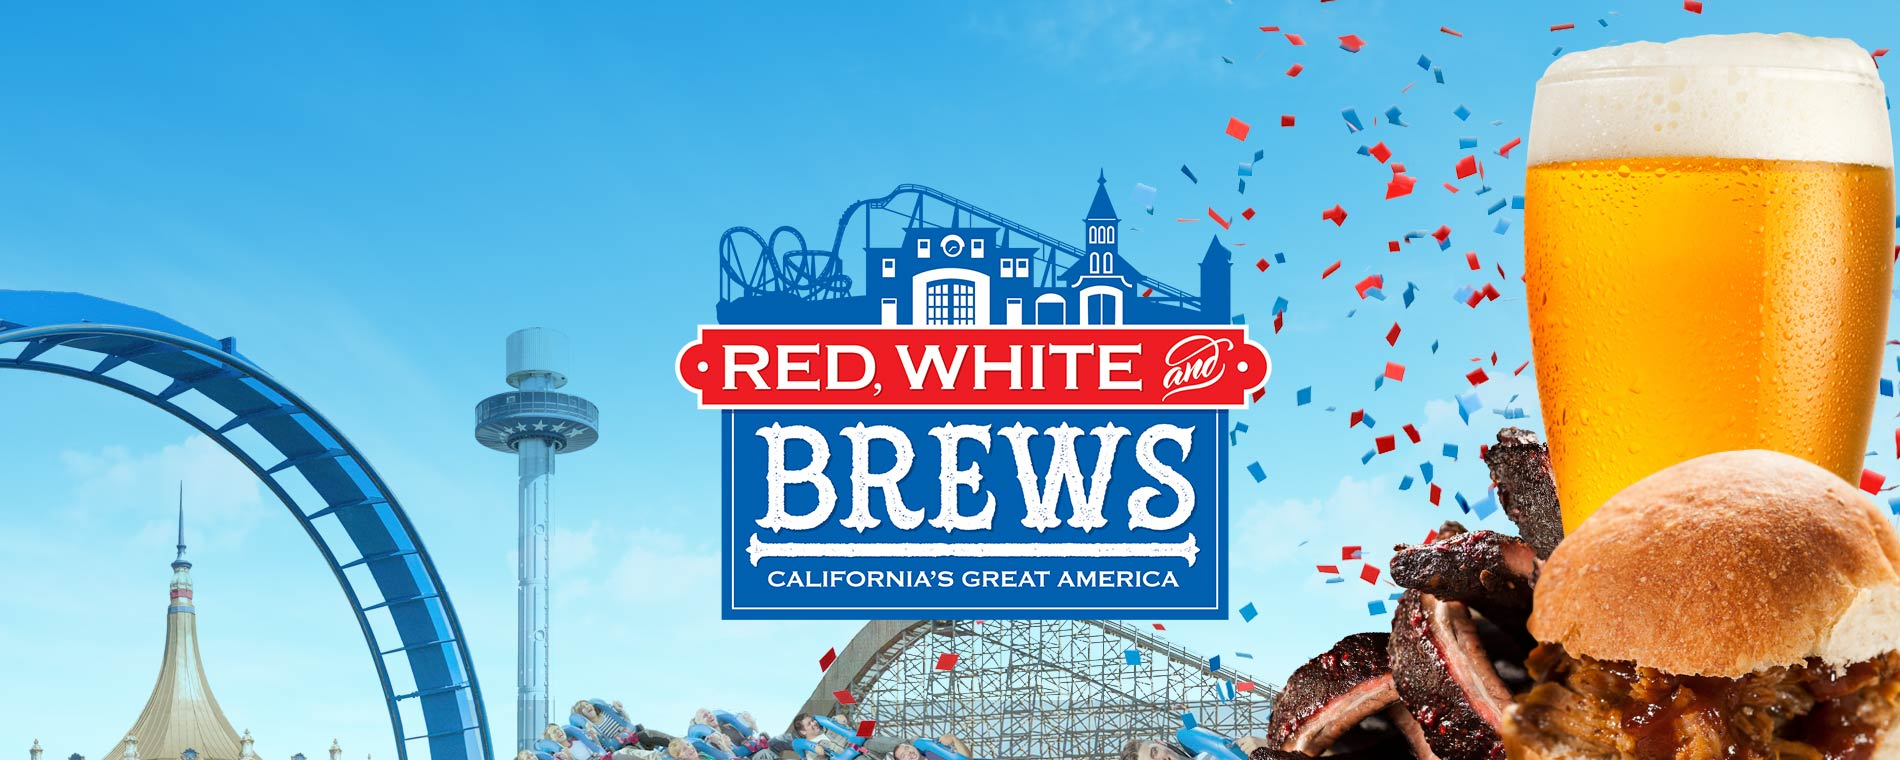 2017 California's Great America Red White Brews